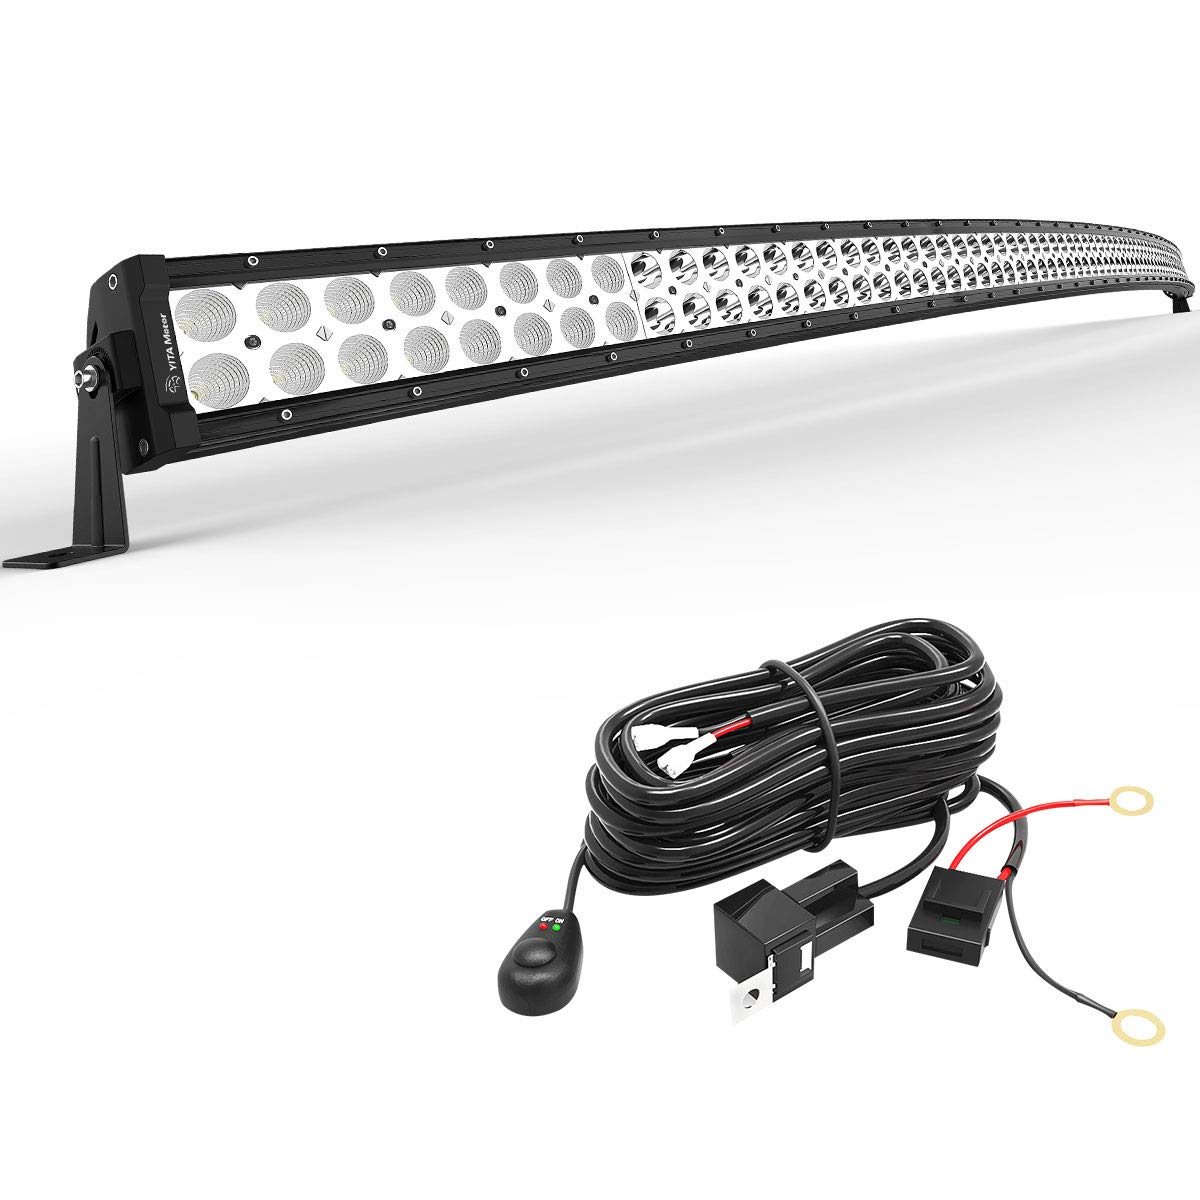 Curved 52Inch 300W Led Work Light Bar Spot Flood Combo For Off road SUV White 54 Car & Truck Parts Car & Truck Light Bars